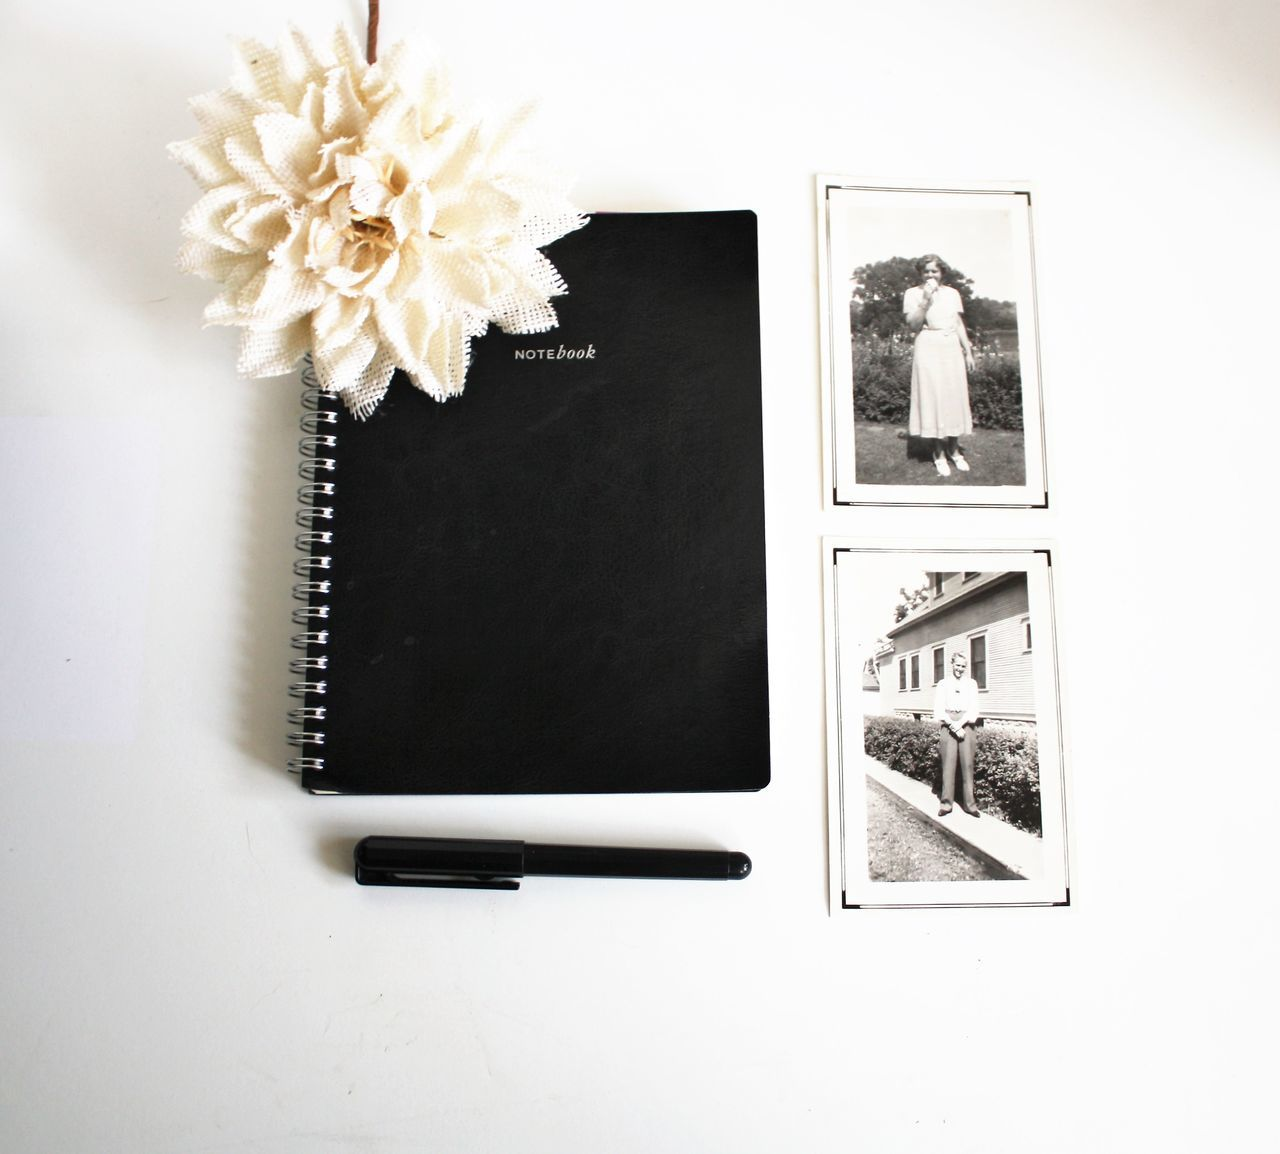 Blogphotography Day Flatlay Flower Indoors  Memories Memoriesforlife No People Pen And Paper Photograph Studio Photography Studio Shot Time To Reflect Time To Relax Vintage Vintage Photo White Background Write Writer Writing Beautifully Organized Lieblingsteil